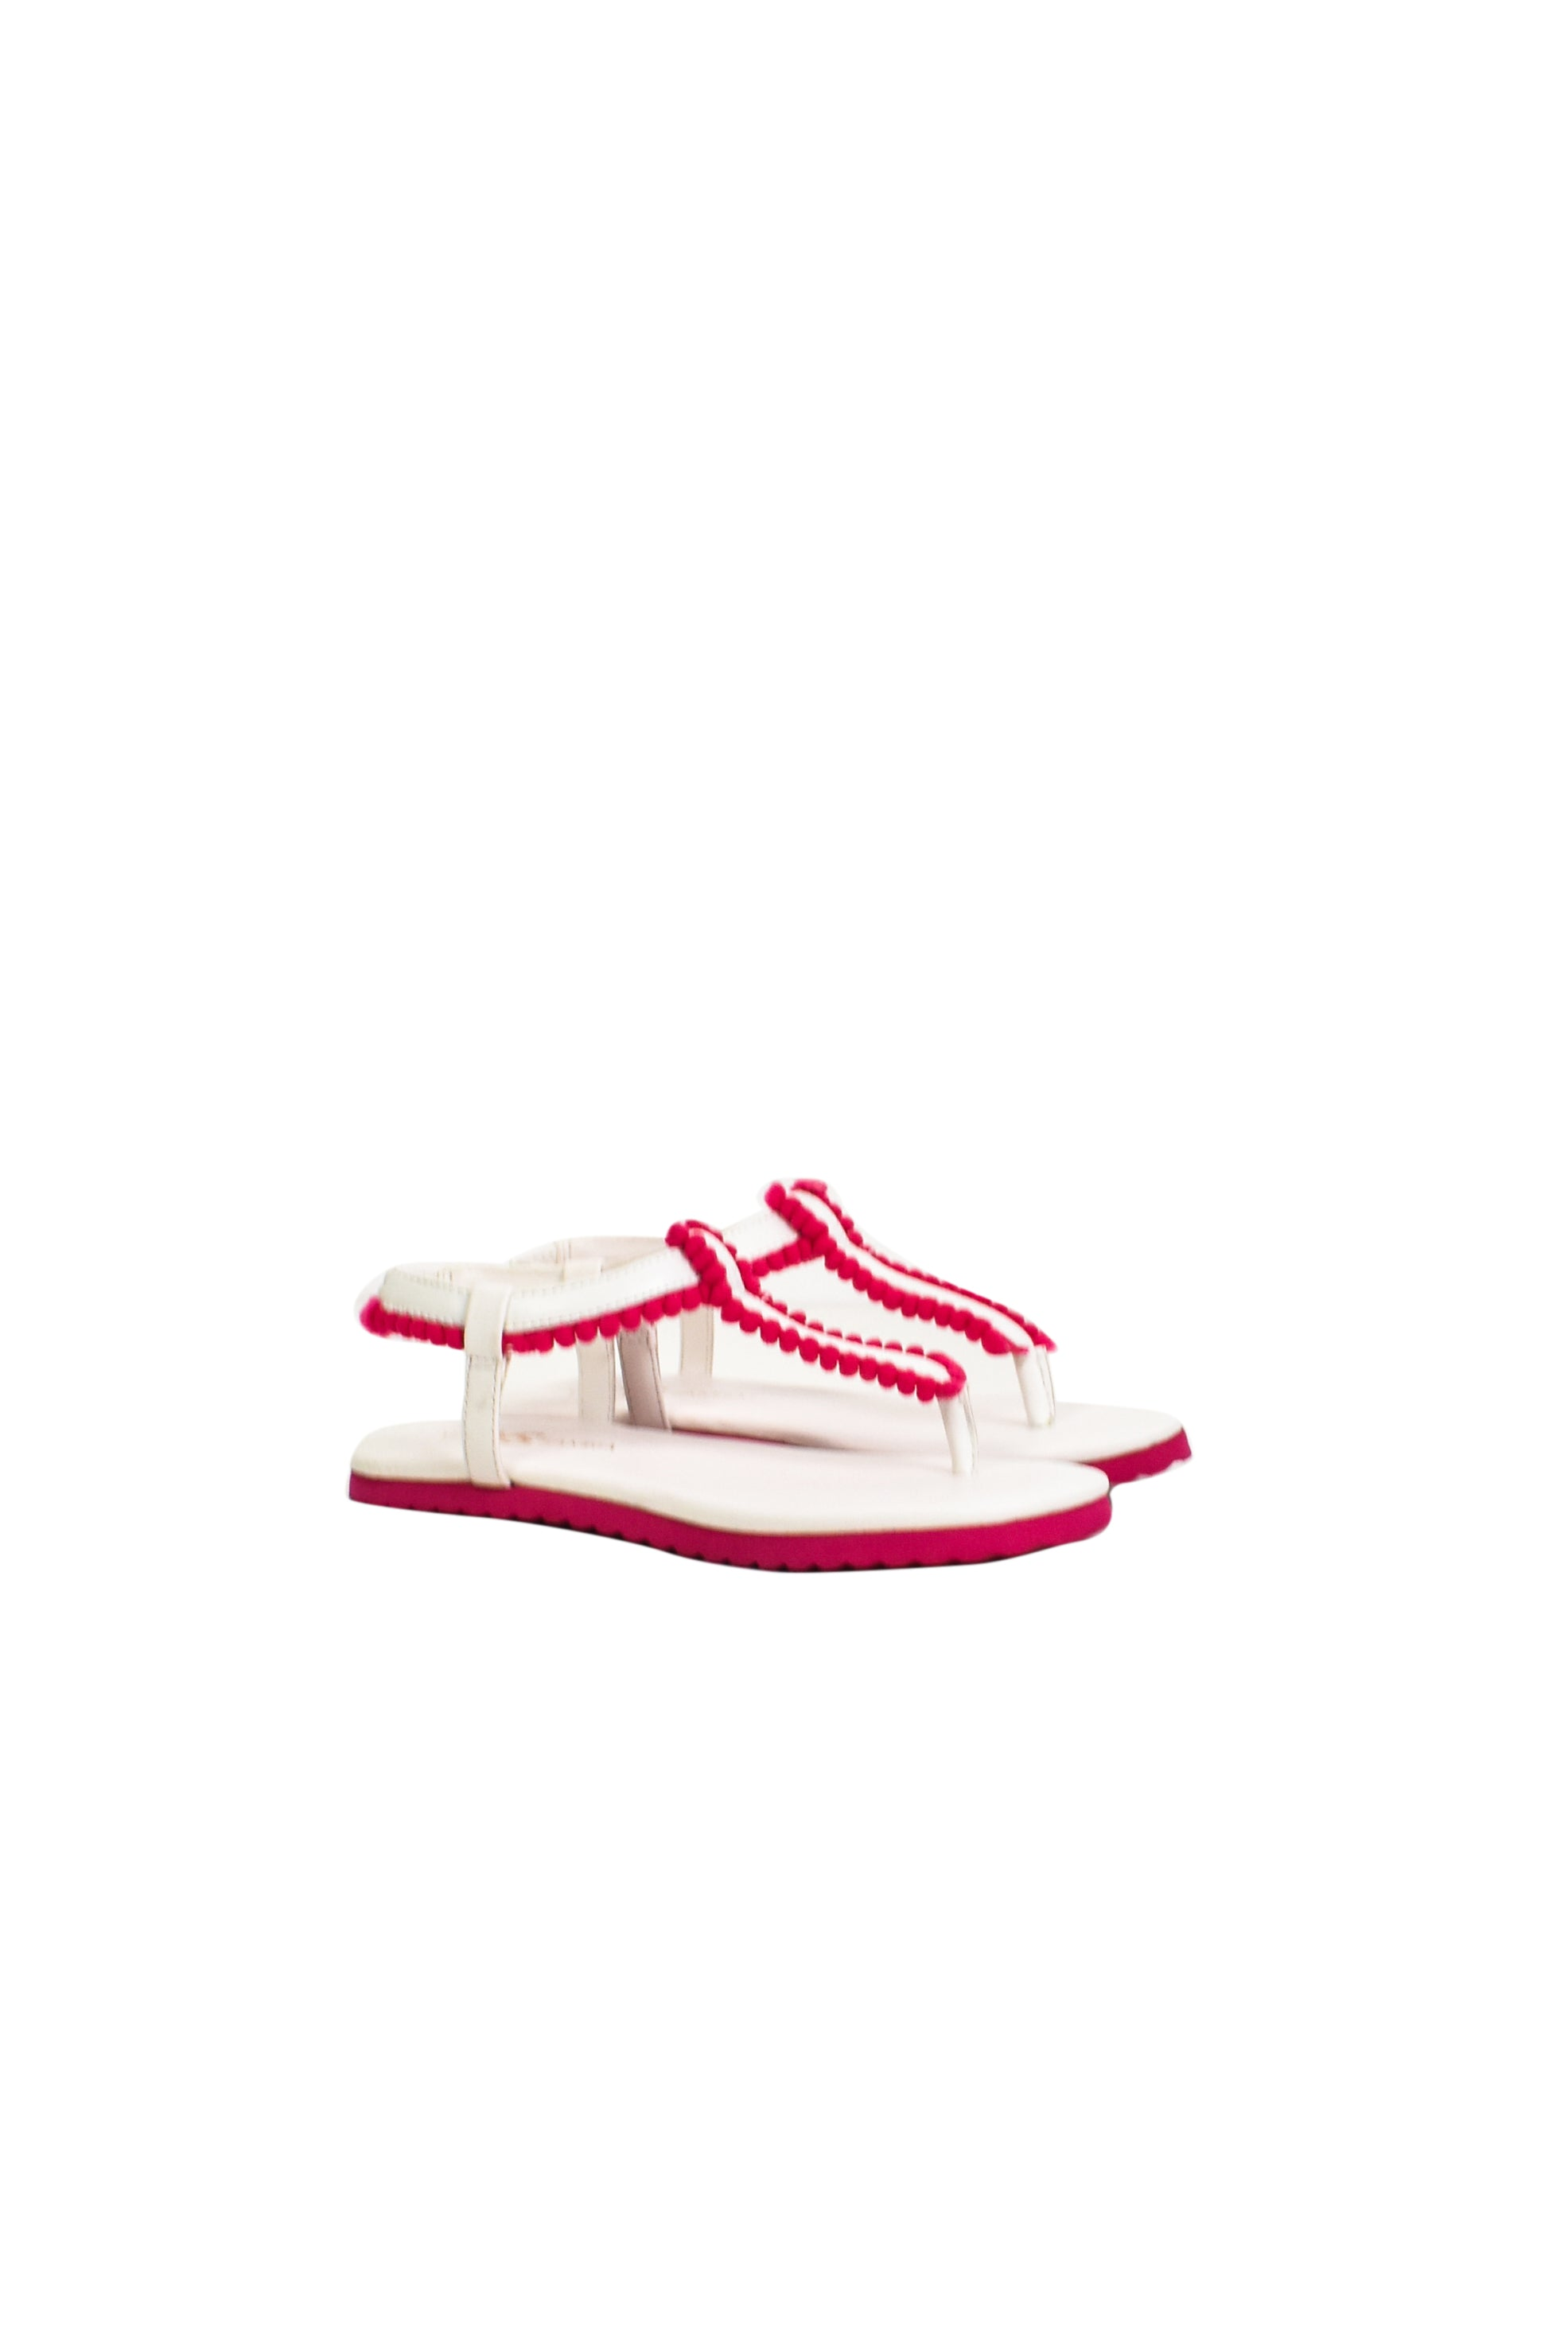 10013739 Yosi Samra Kids ~ Shoes 5-6T (US 11-13) at Retykle